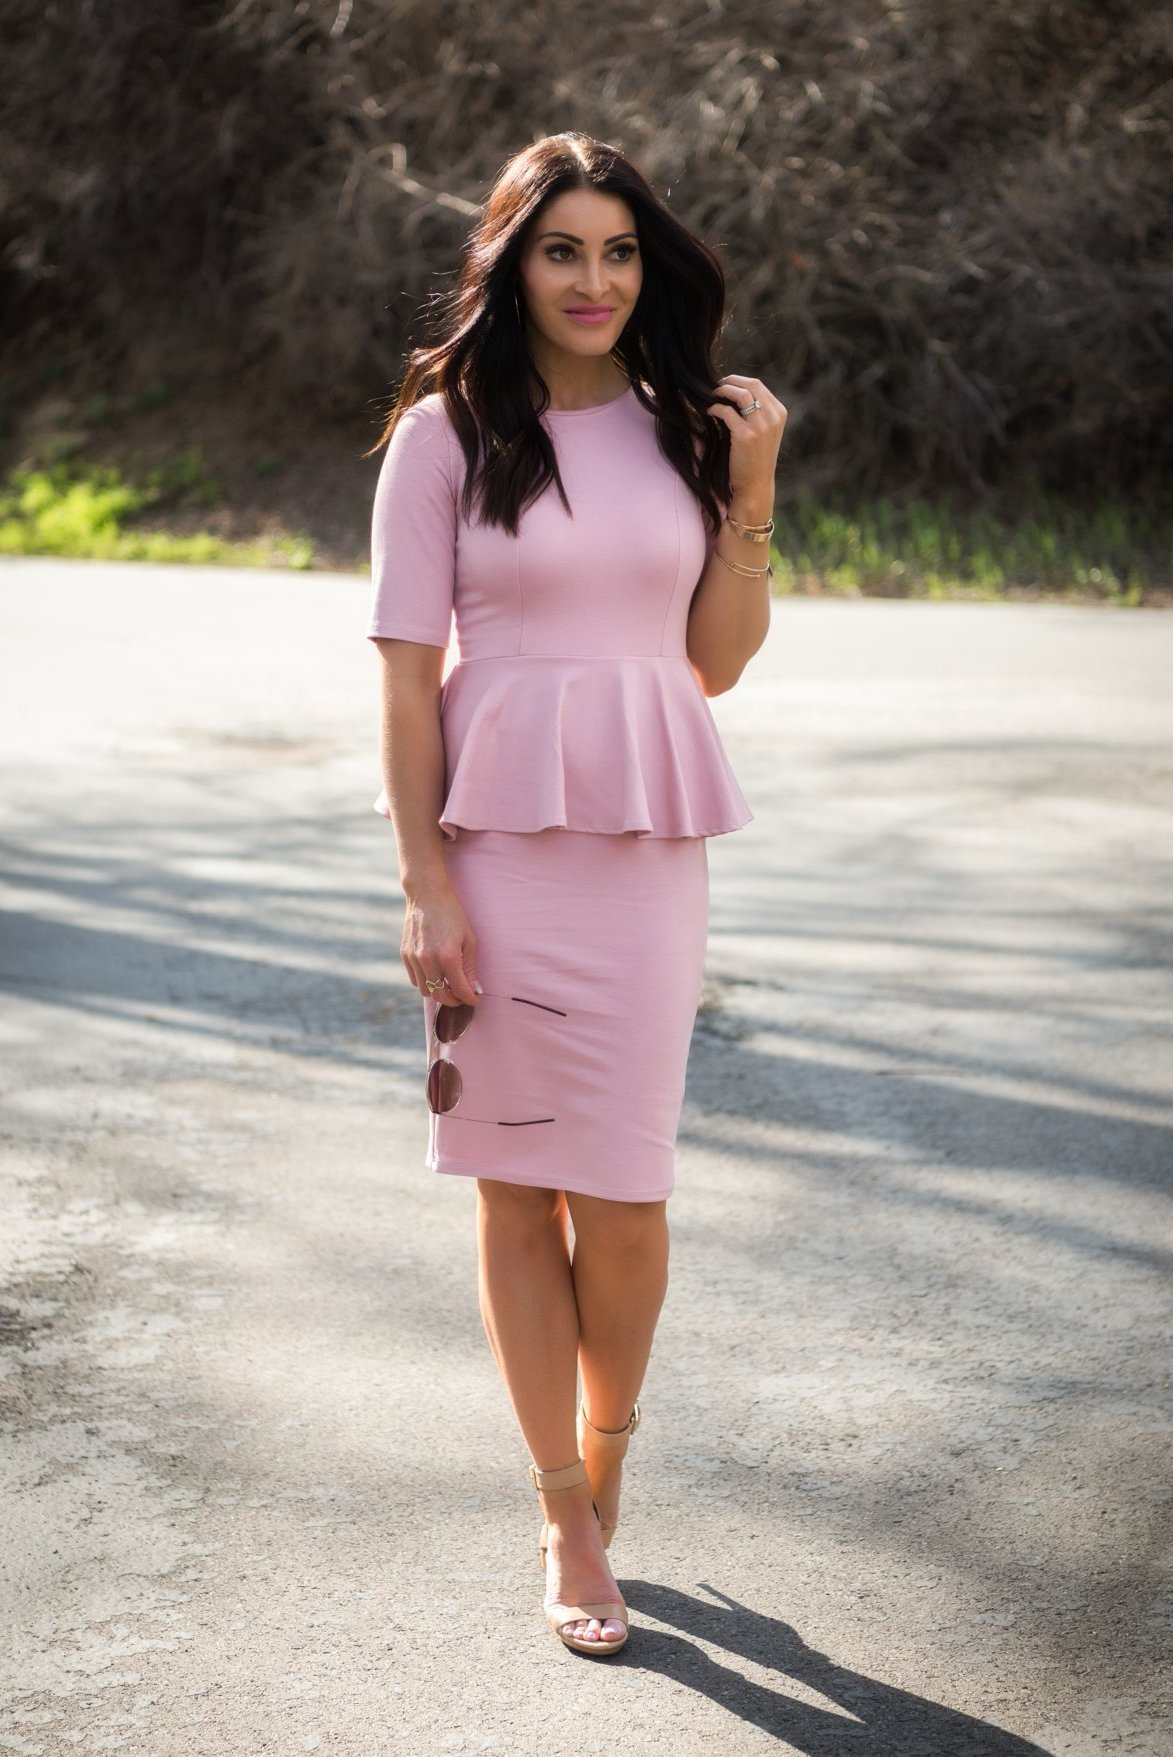 6b3b78105 SexyModest Boutique: 😍 SEXYMODEST CLOTHING ARRIVES IN LEHI COSTCO ...